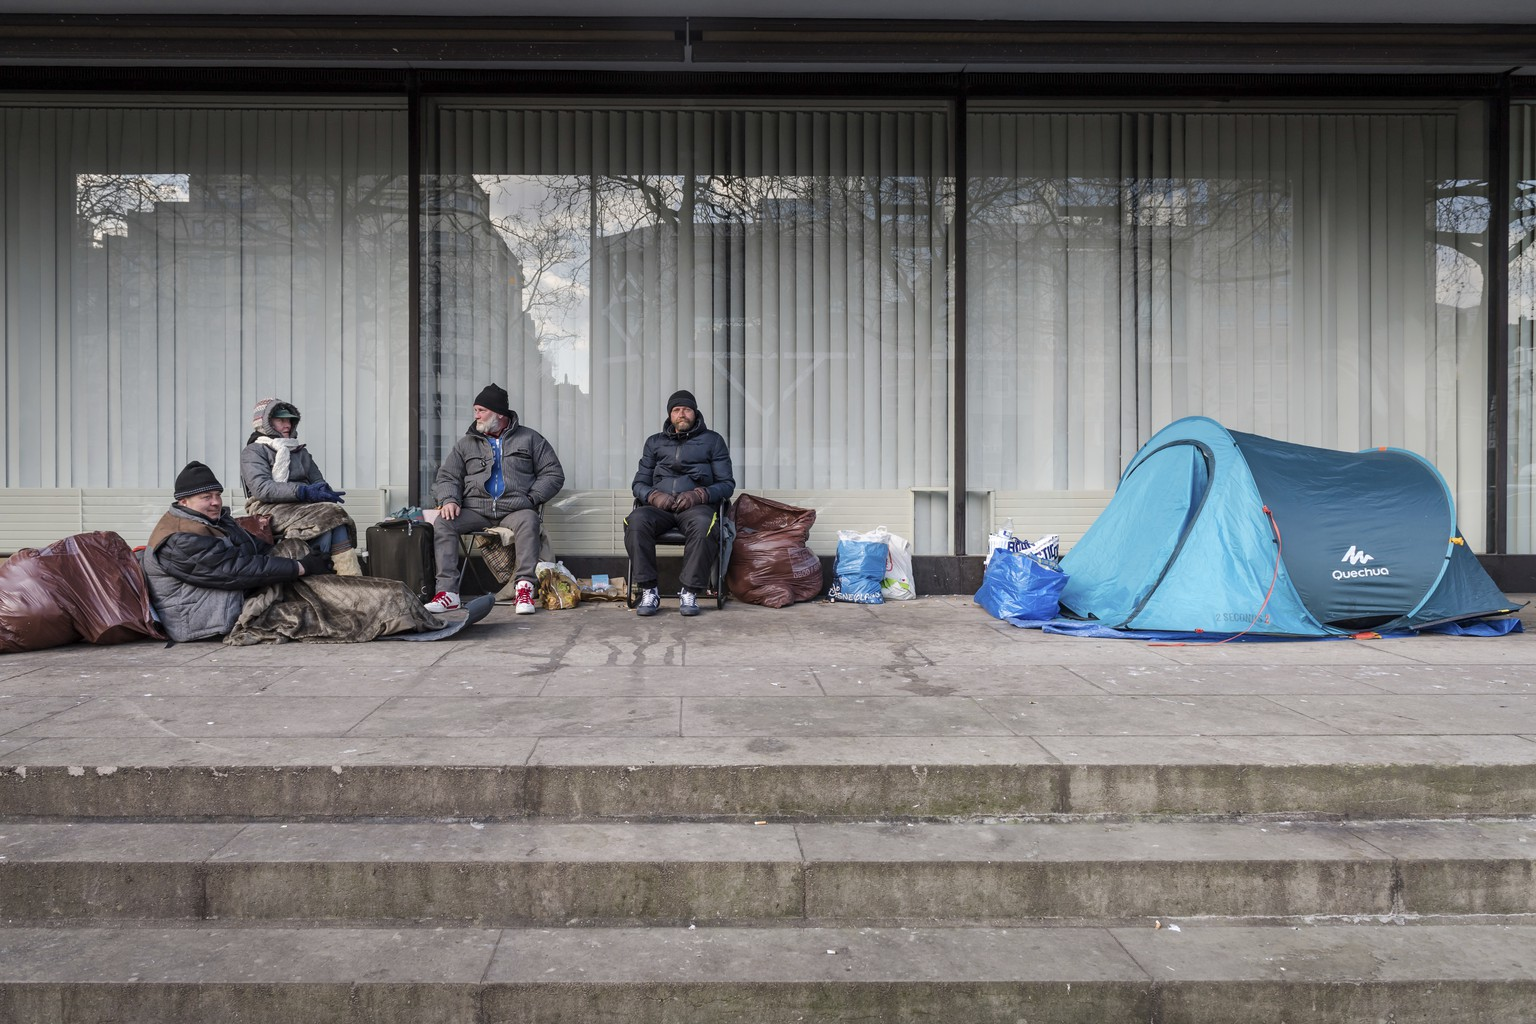 A group of homeless people from Poland, who do not want to go to a shelter, camp under a building in the center of Brussels on Tuesday, Feb. 27, 2018. As a cold snap grips Europe, authorities in Brussels have begun forcing homeless people off the streets and out of sub-zero temperatures. A mayor in the Etterbeek neighborhood has ordered that people be obliged to take shelter at night between 8:00 pm and 7:00 am until March 7 unless the weather improves. (AP Photo/Geert Vanden Wijngaert)